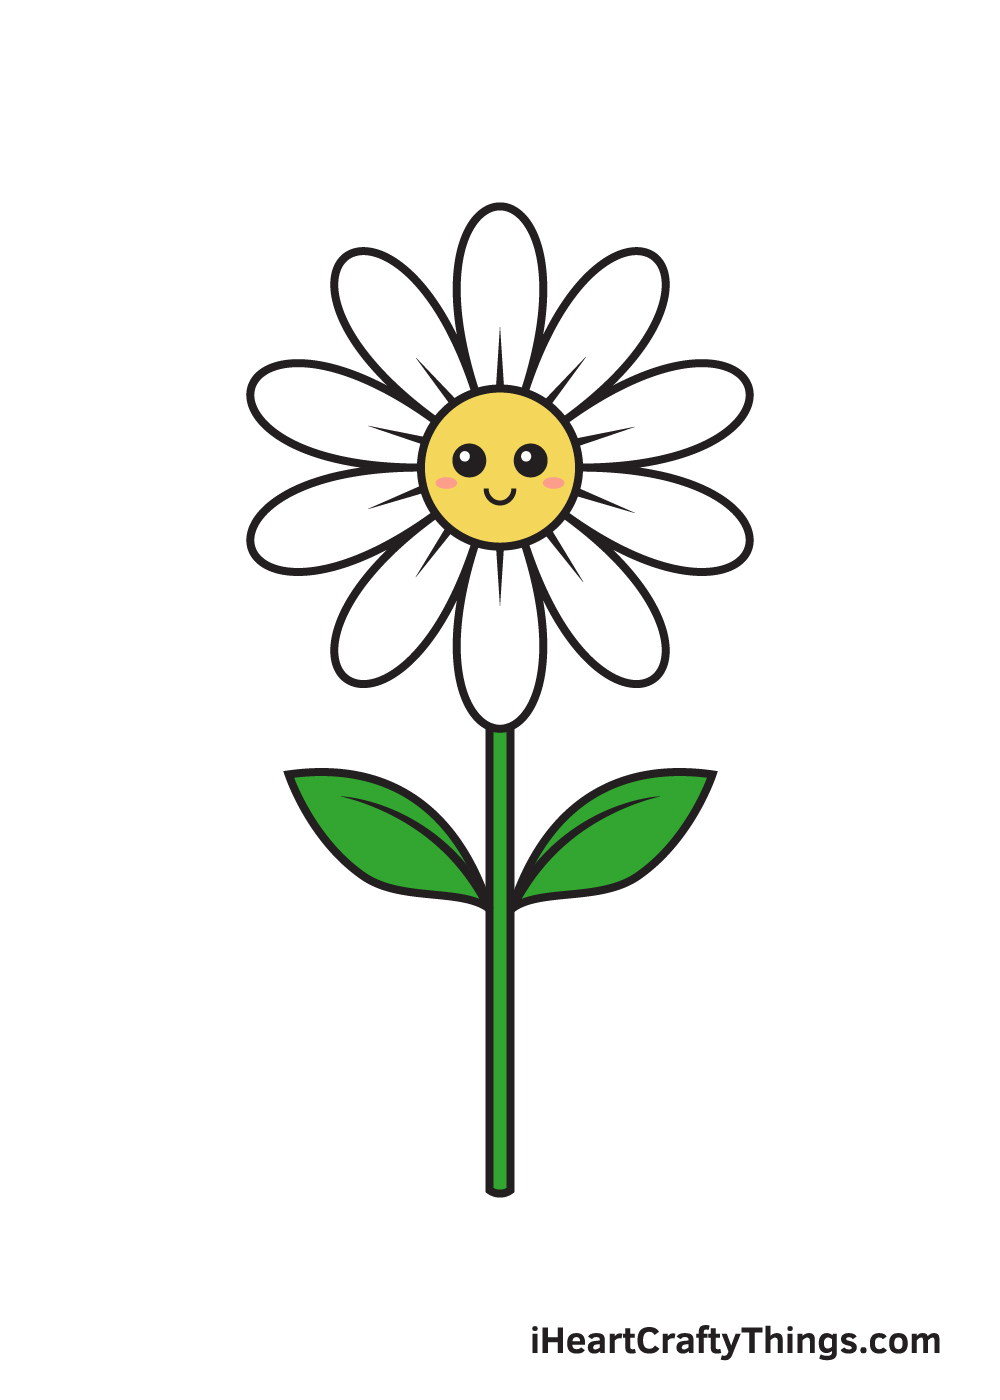 daisy drawing - 9 steps